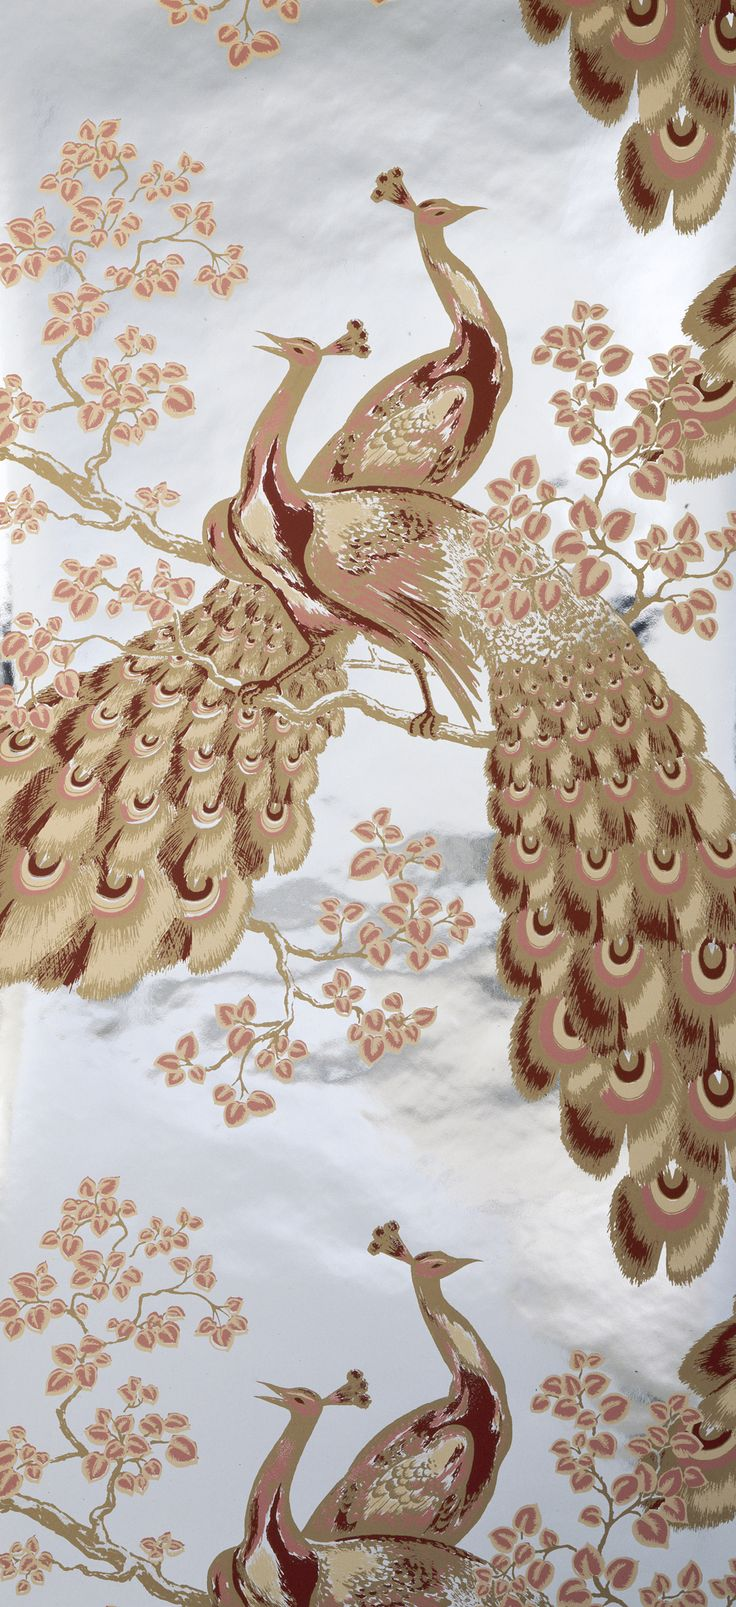 'Peacock' wallpaper design, made by Florence Broadhurst Wallpapers, Sydney, 1969-1977, MAAS collection, 2002/77/1